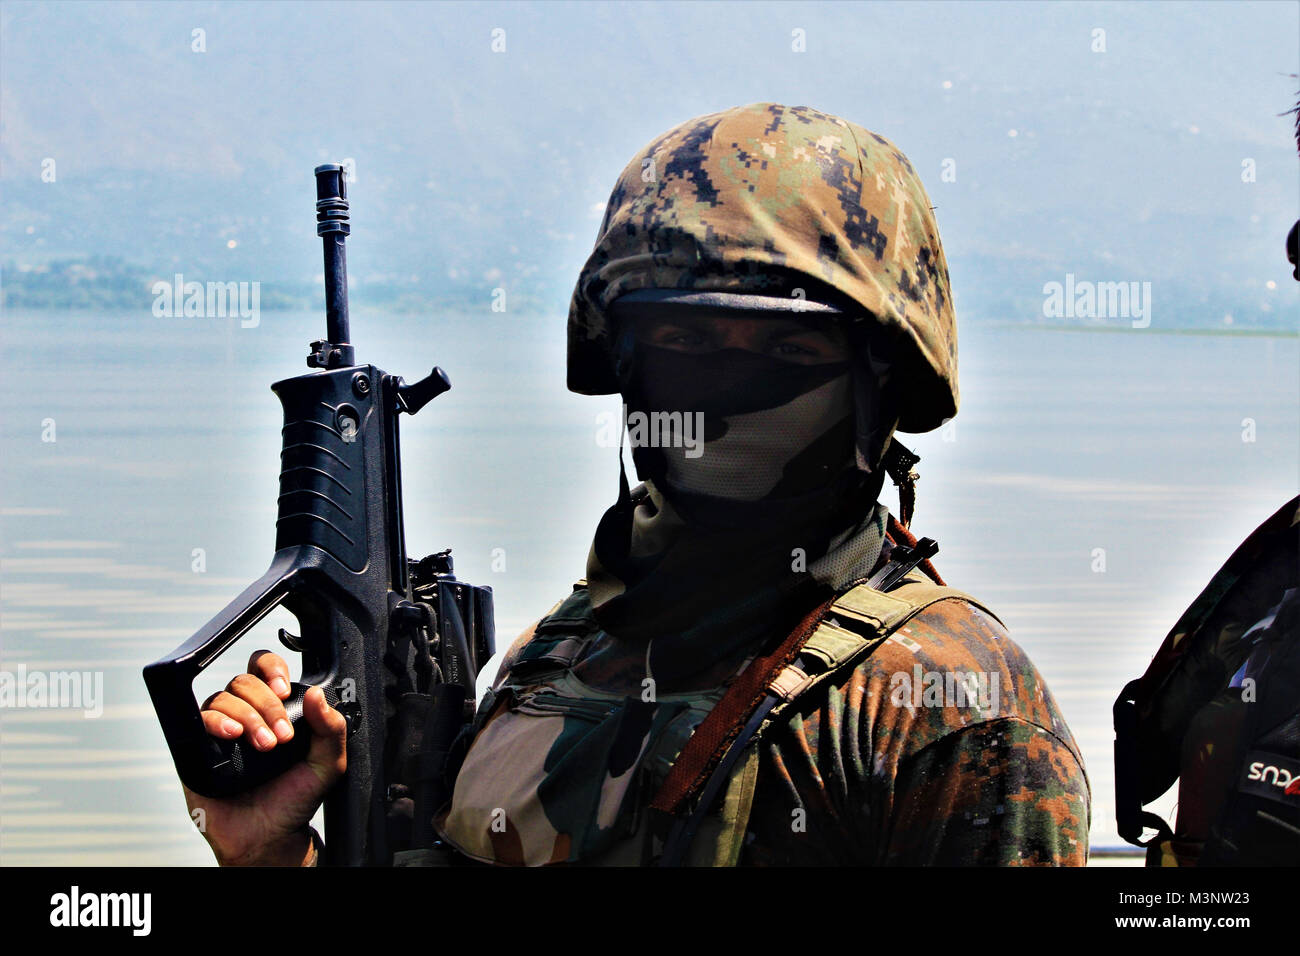 Army man with automatic rifle, Sopore town, Kashmir, India, Asia - Stock Image